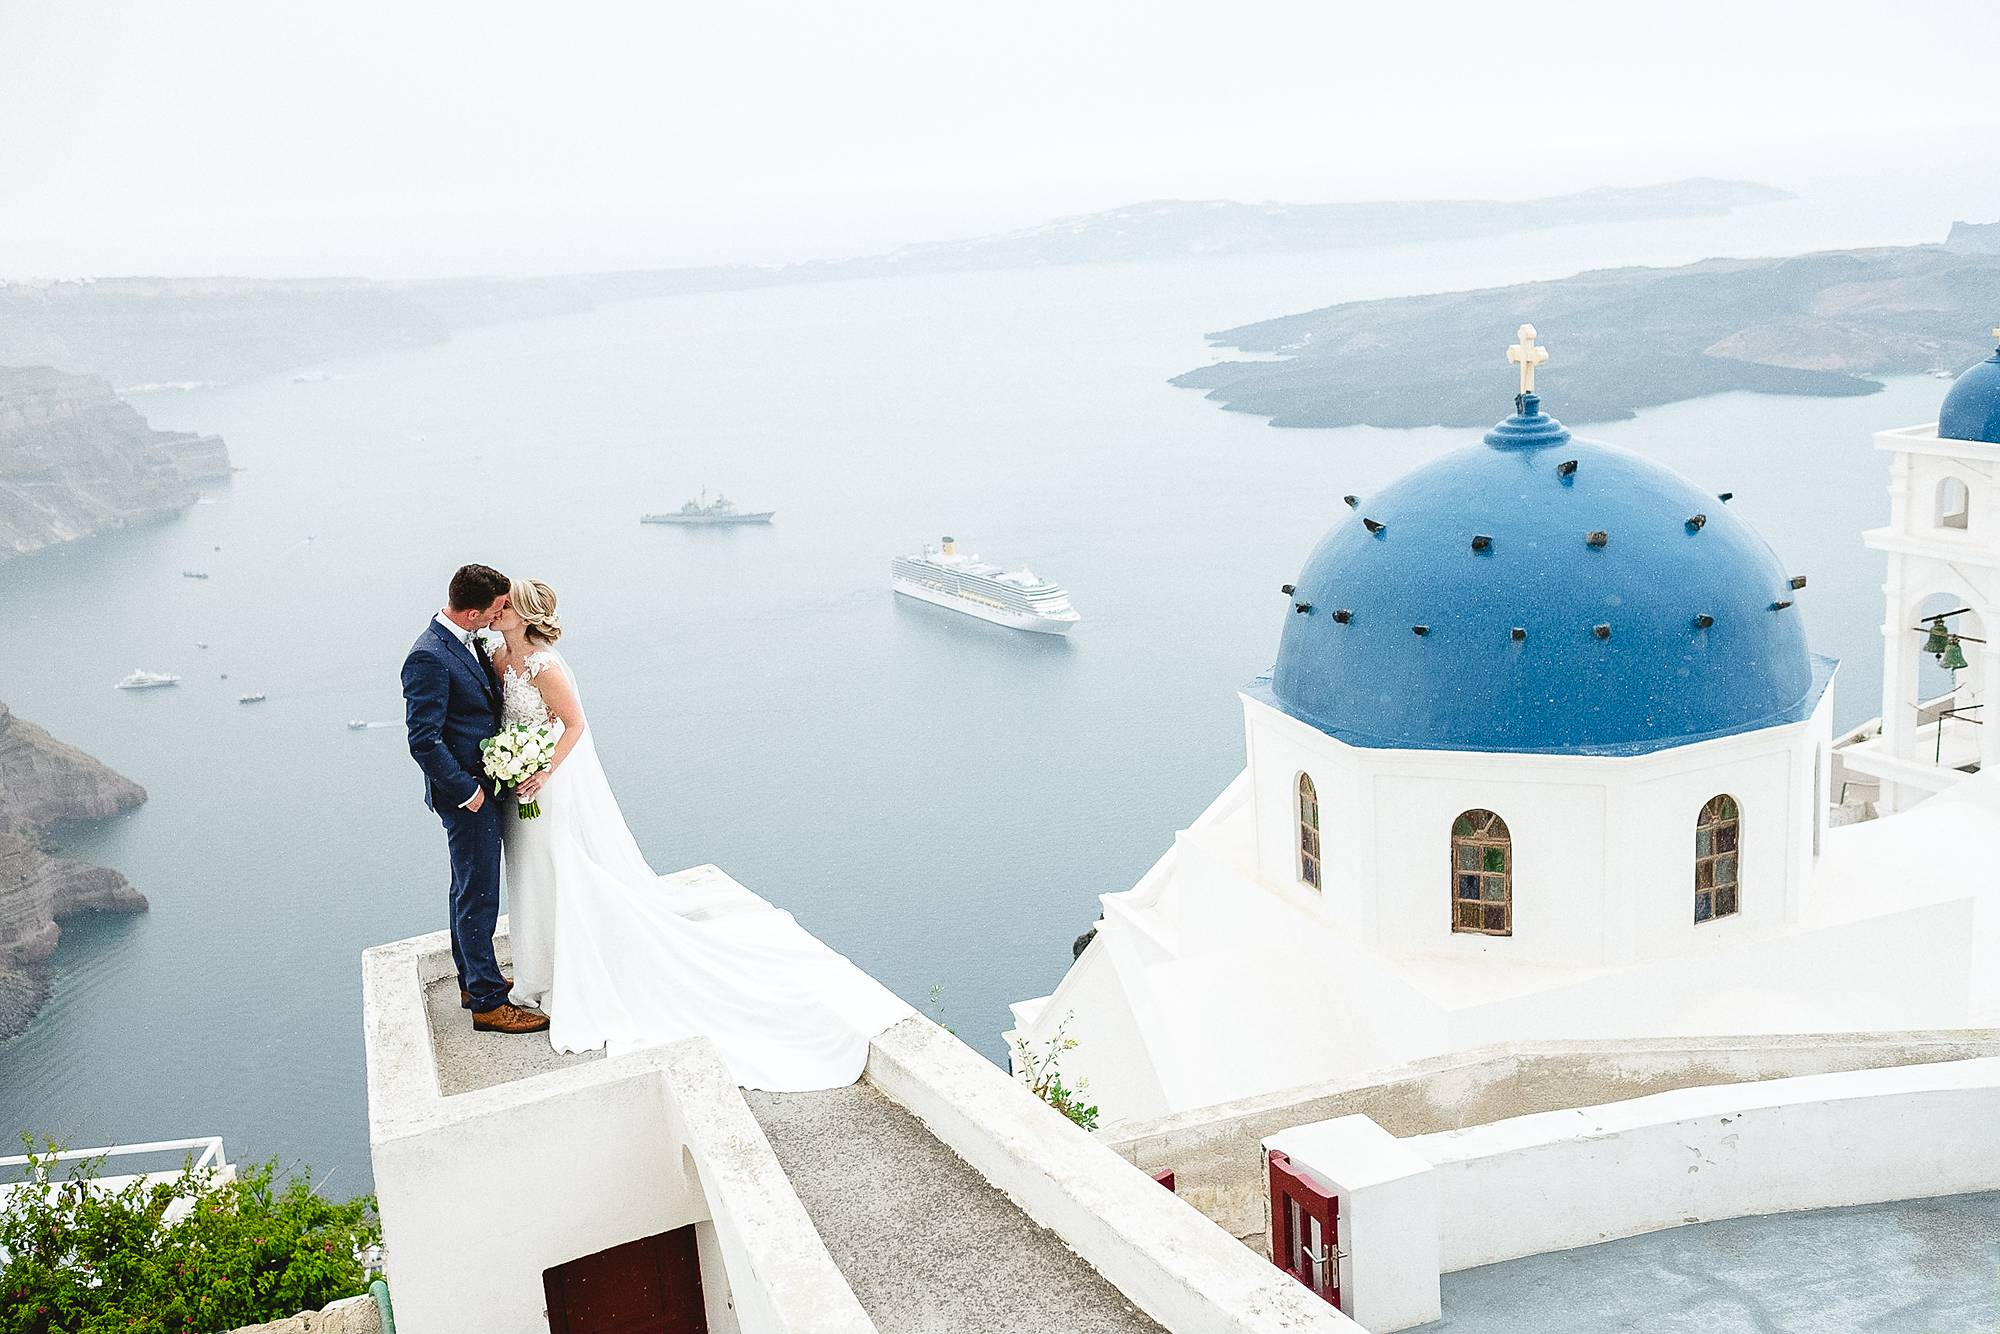 Santorini-Wedding-Photographer-90.jpg